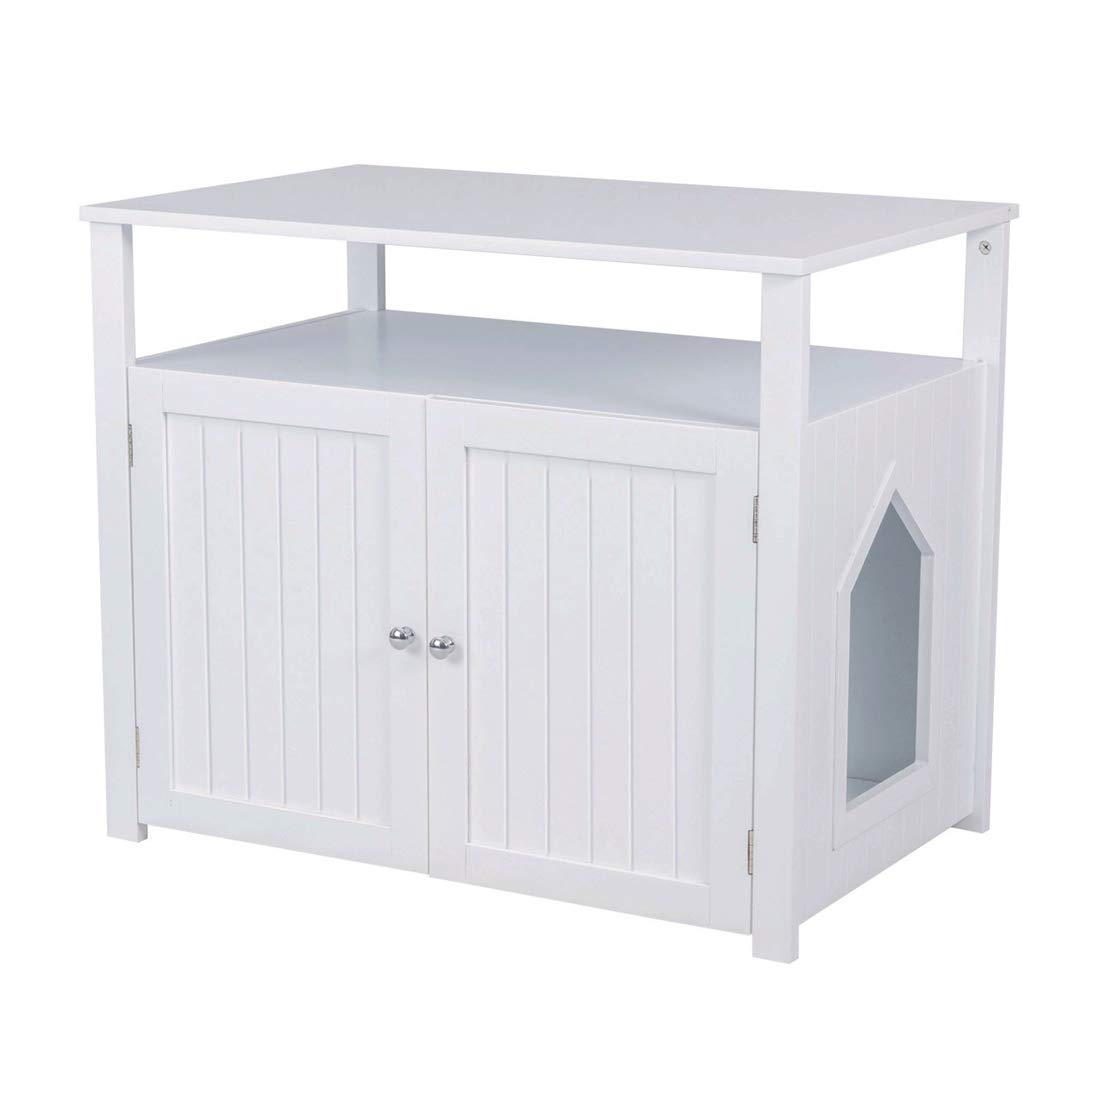 Good Life Double-Door Pet Crate Cat Washroom Hidden Cat Litter Box Enclosure Furniture Cat House Right/Left Side Entrance Selectable with Table Home Nightstand Large Box White Color by GOOD LIFE USA